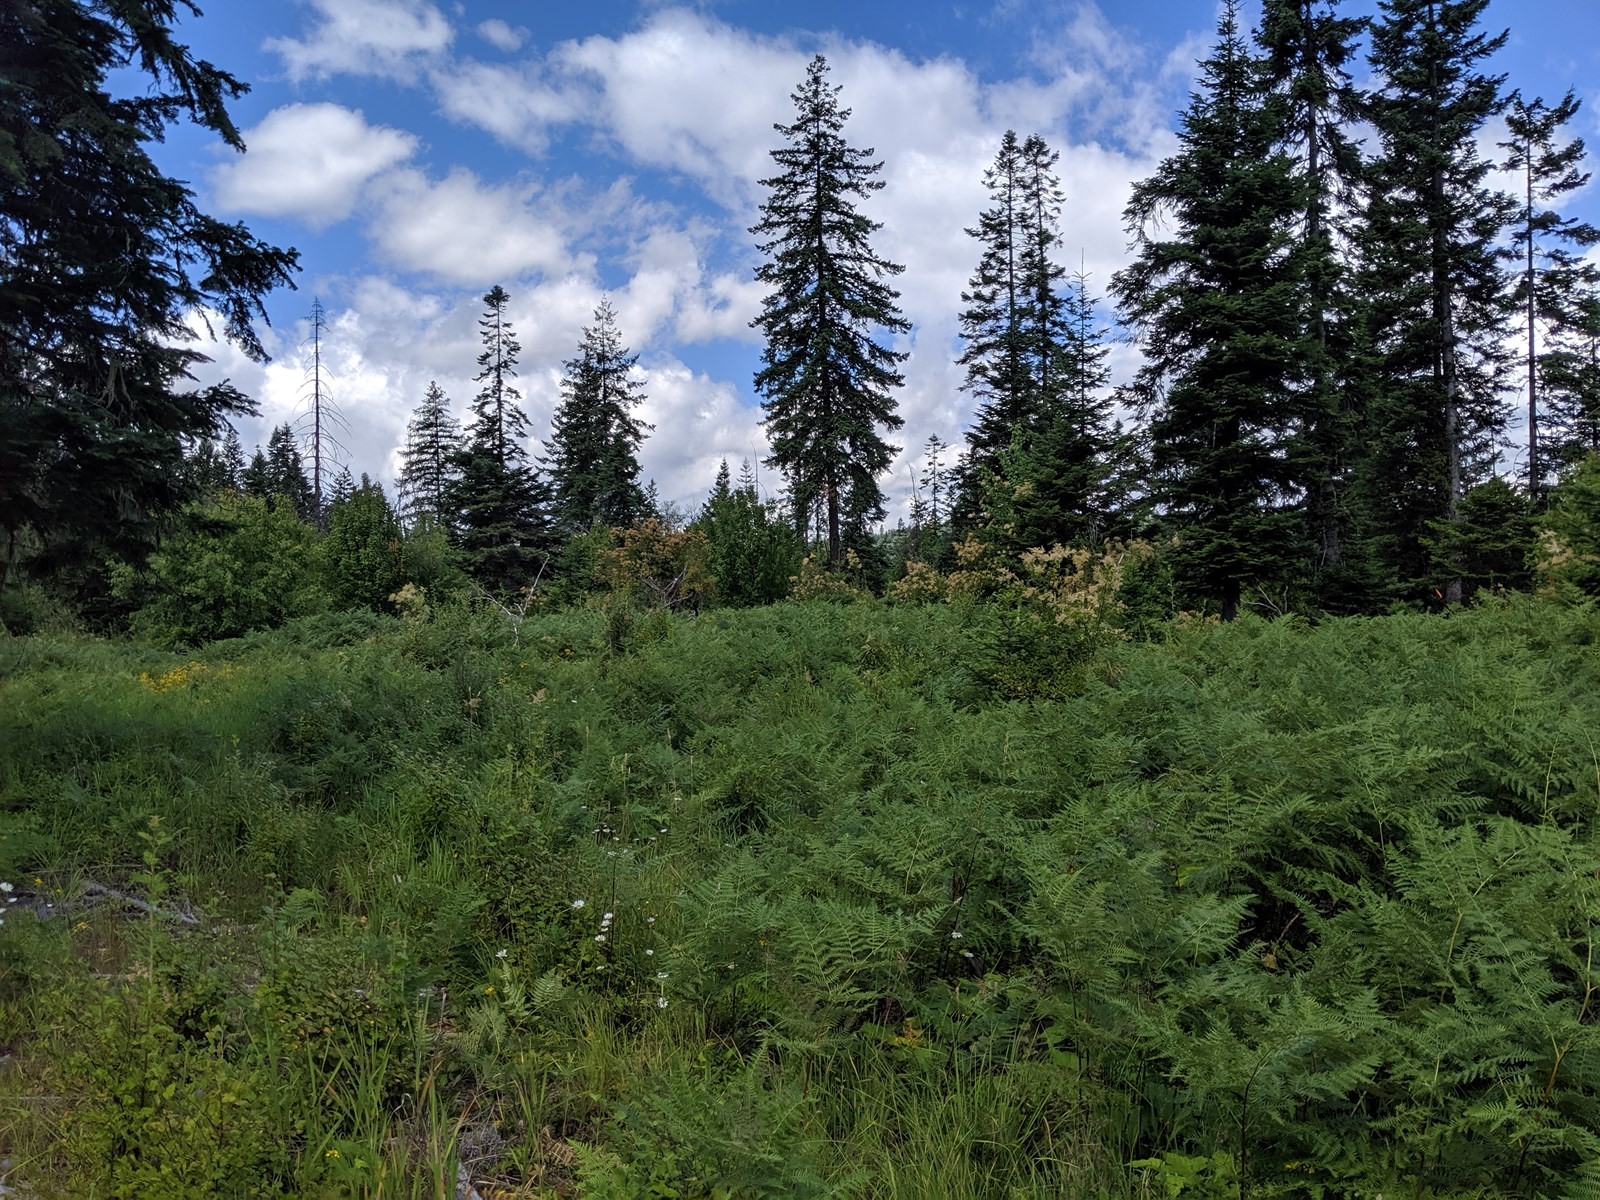 Mountain building/recreational lot for sale Orofino, Idaho